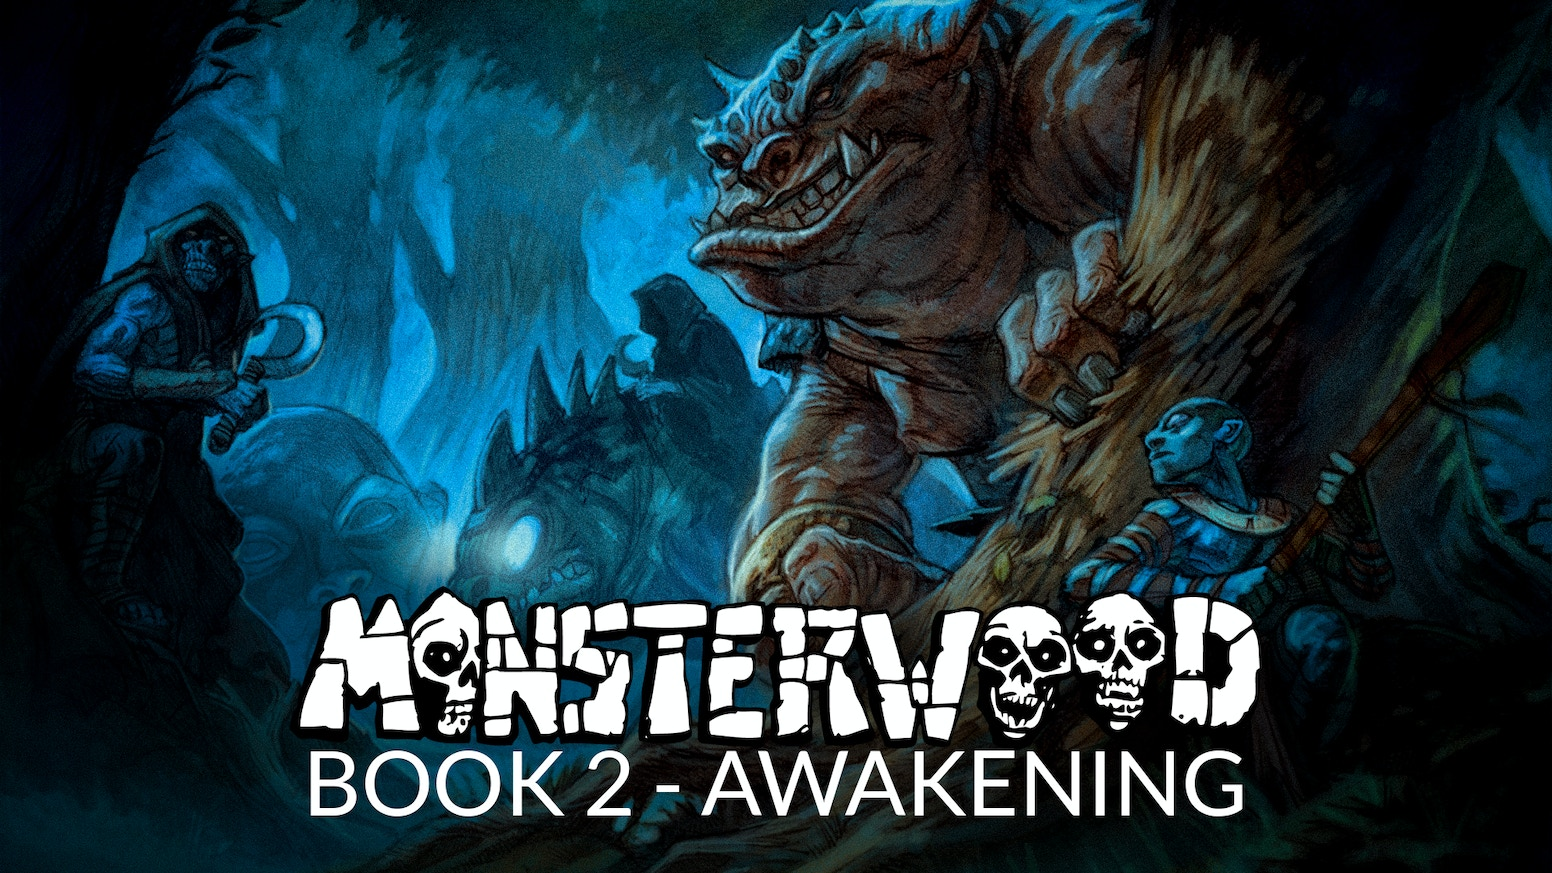 MONSTERWOOD Book 2: Awakening is a coming of age, Fantasy Graphic Novel set in the ancient, haunting and beautiful world of Magog.